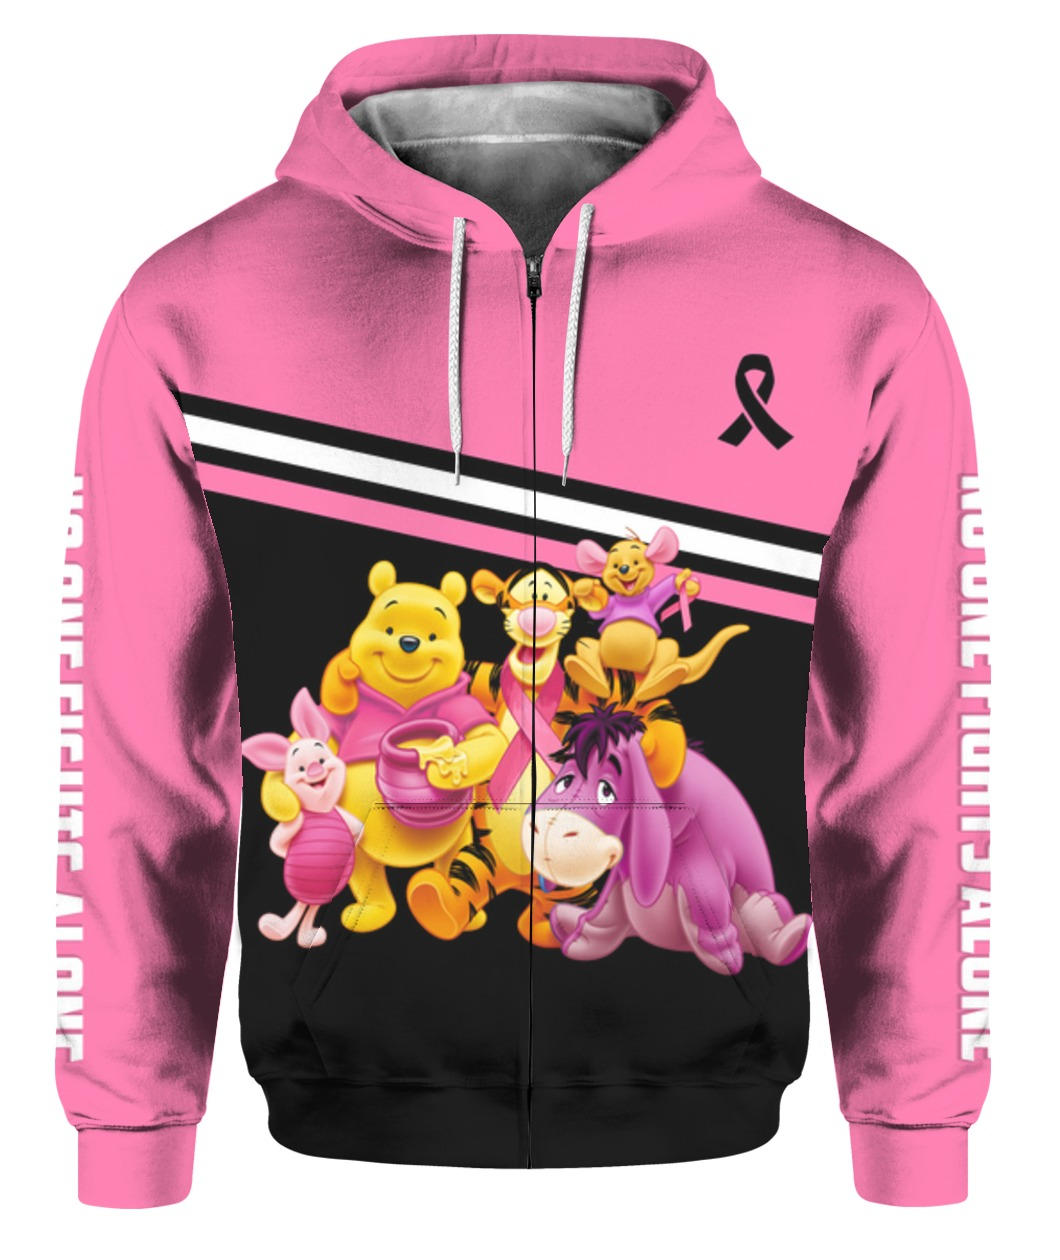 Winnie-the-pooh breast cancer awareness all over printed zip hoodie